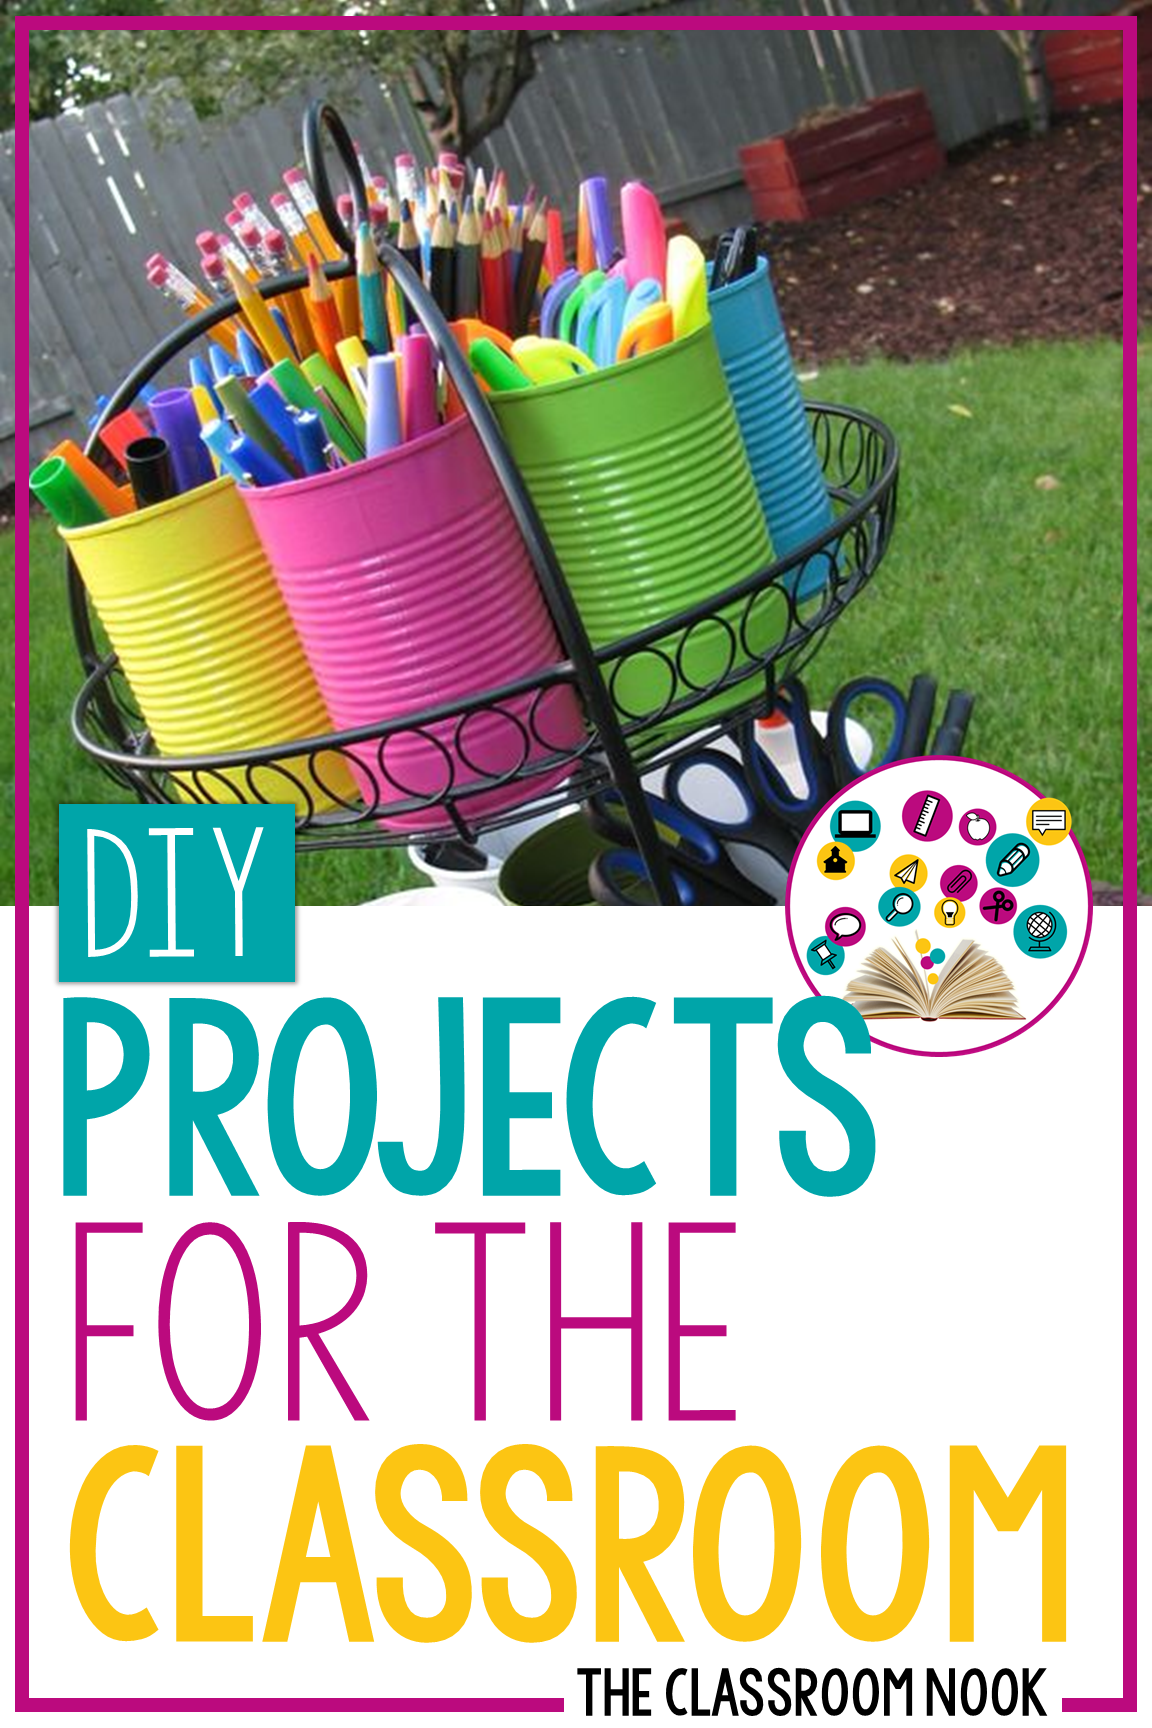 Check out this post for some DIY (do-it-yourself) projects that you can create for your classroom. These are projects for even level - beginning, intermediate, and advance DIY-ers! #classroomdiy #diy #backtoschool